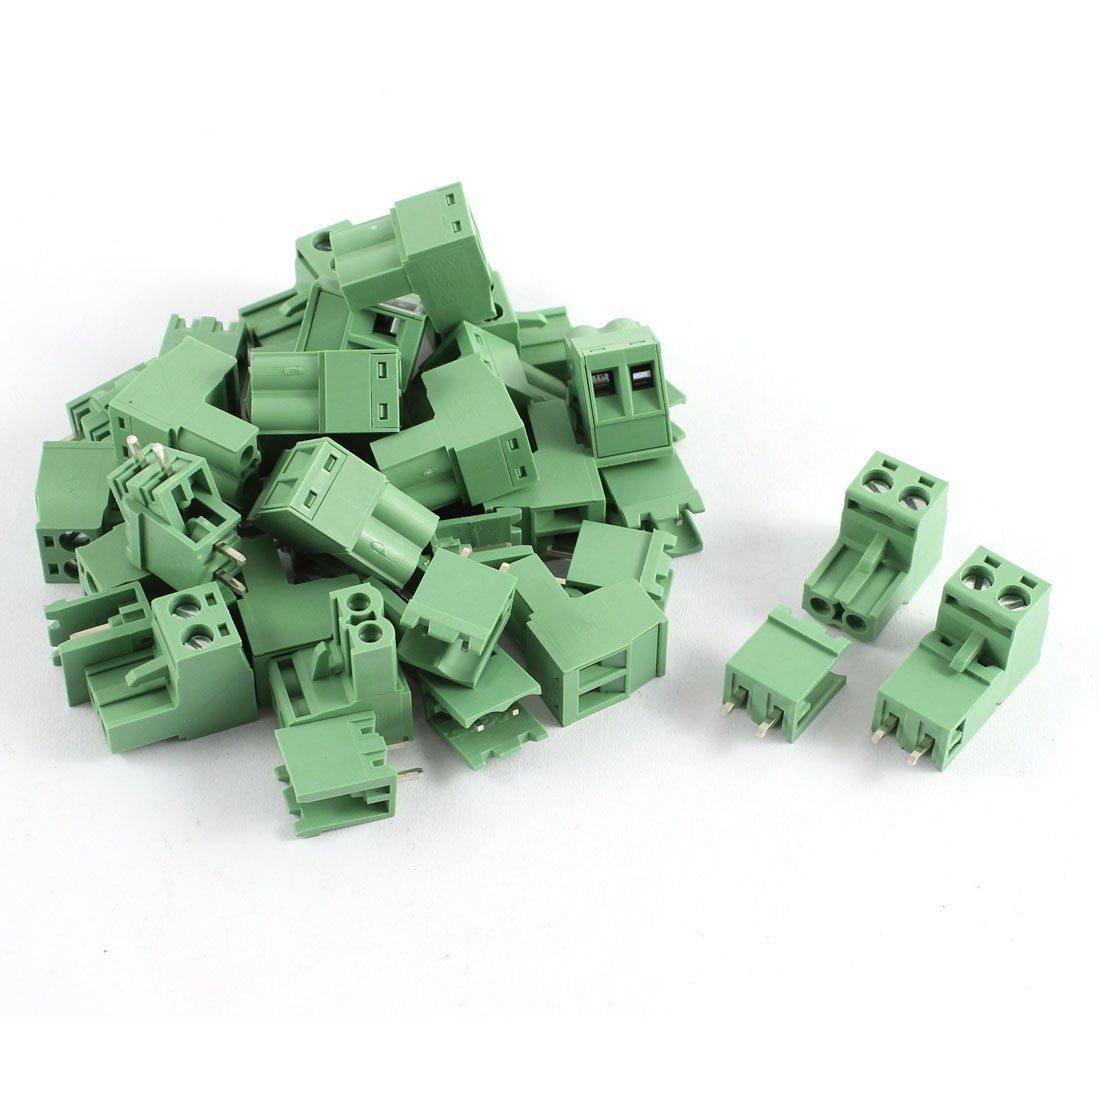 uxcell AWG 12-24 AC 300V 10A 2 Positions PCB Screw Terminal Block 20 Pcs